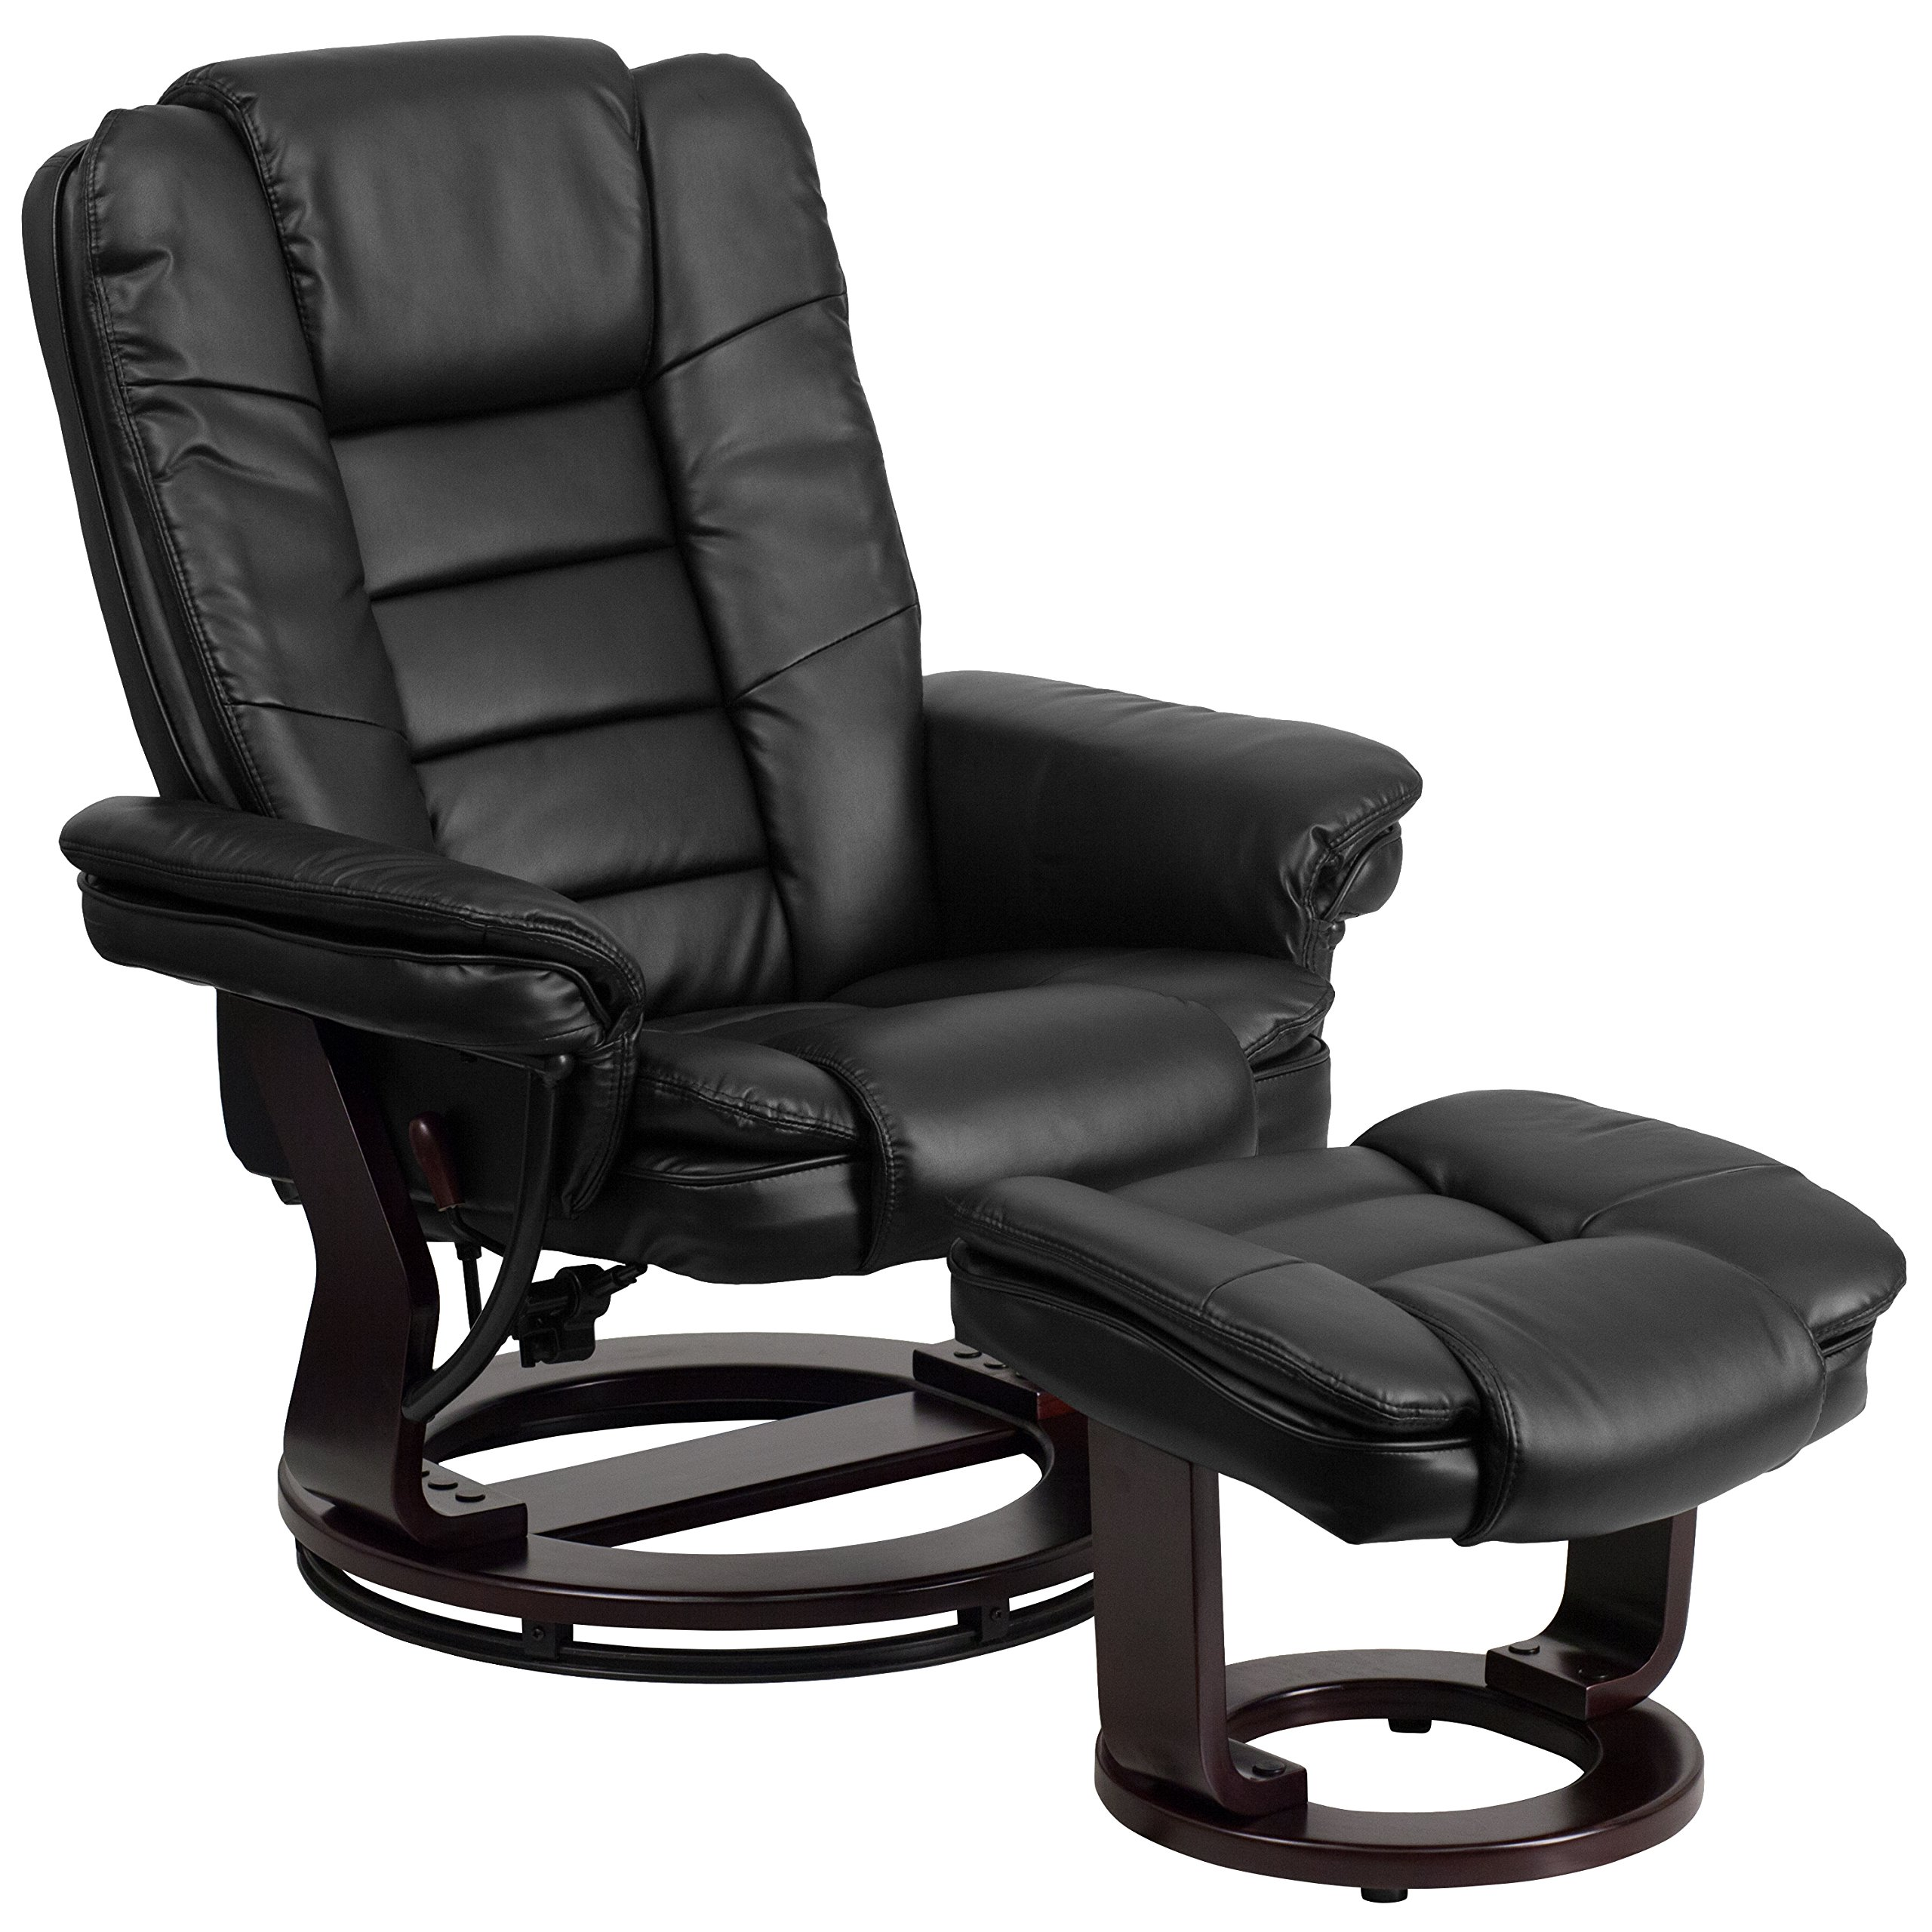 Flash Furniture Contemporary Multi-Position Recliner with Horizontal Stitching and Ottoman with Swivel Mahogany Wood Base in Black Leather by Flash Furniture